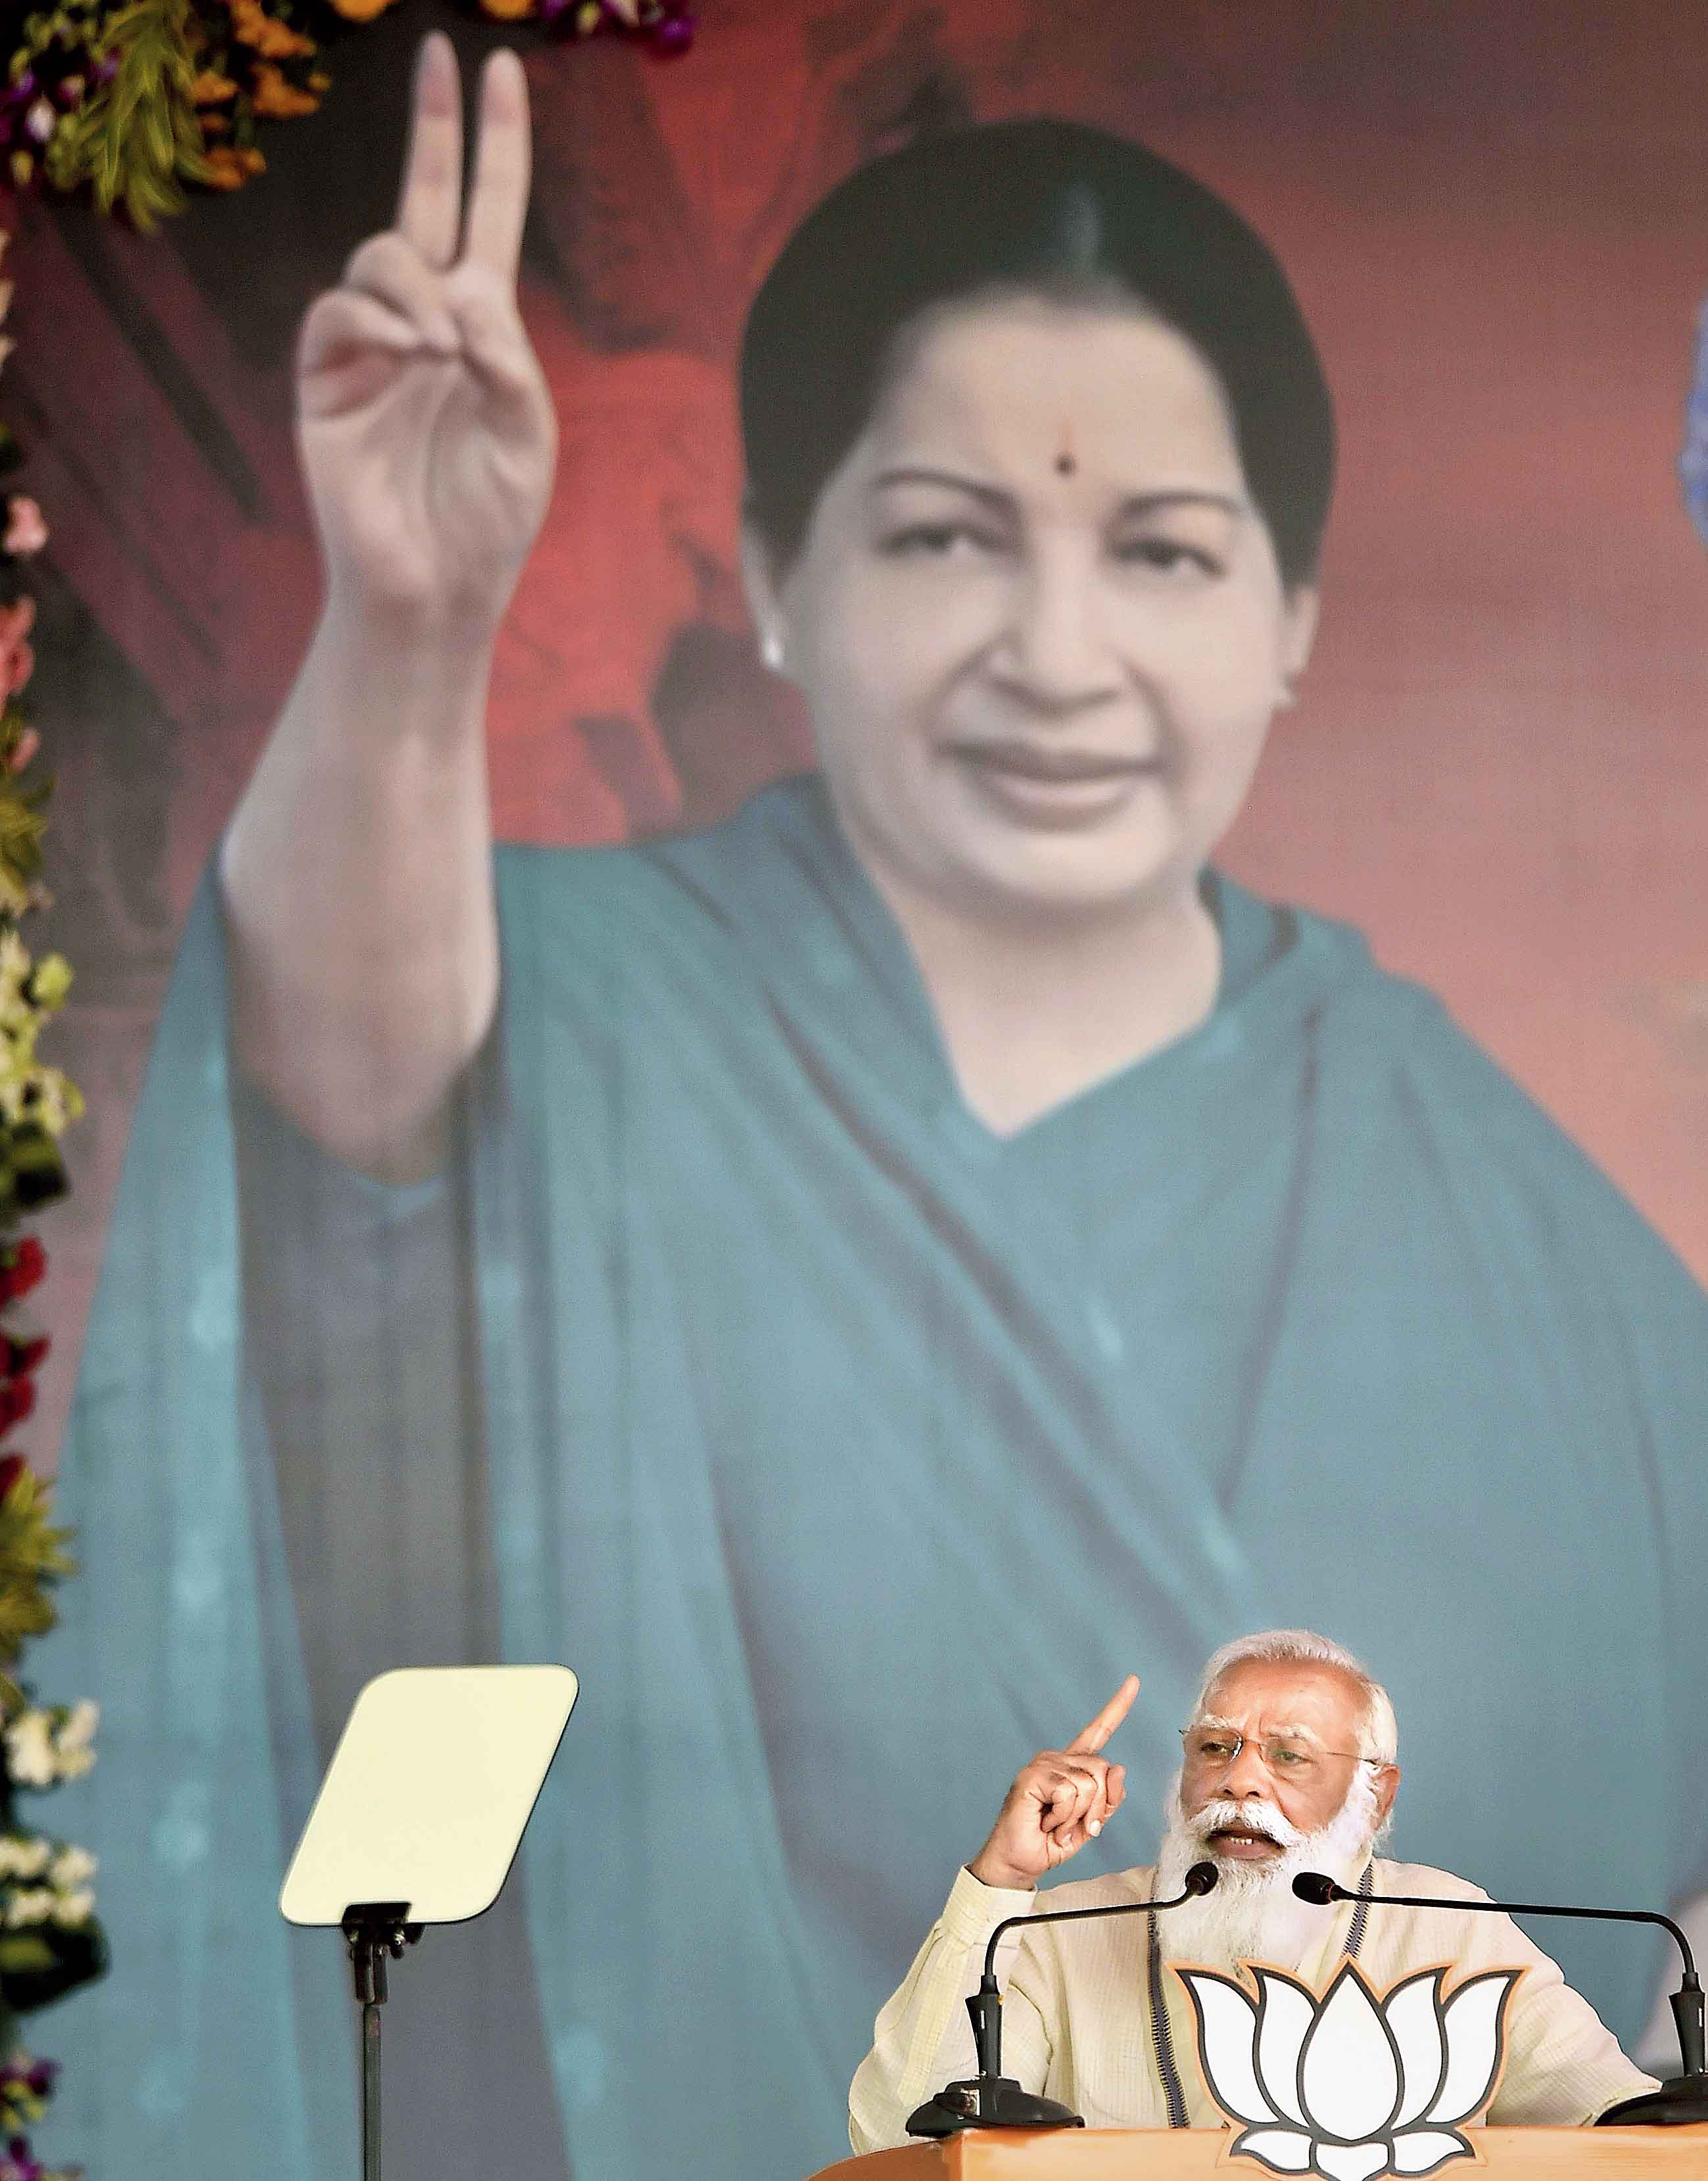 With a portrait of the late Jayalalithaa providing the backdrop, Prime Minister Narendra Modi campaigns for the BJP and its allies, which include the AIADMK, in Madurai in Tamil Nadu on Friday